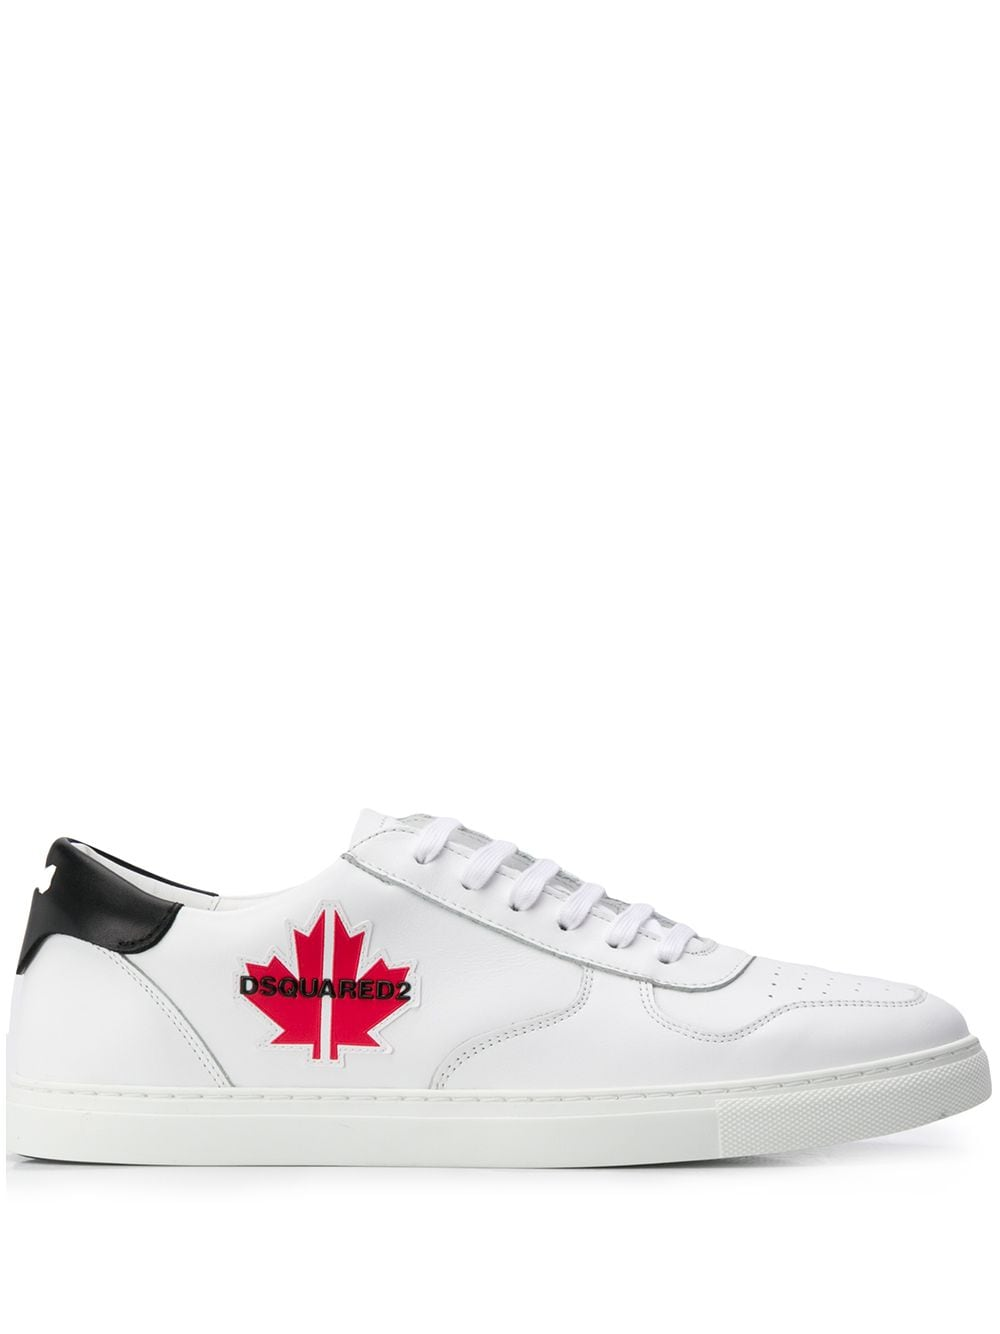 Dsquared2 Sneakers mit Ahorn-Patch - Weiß von Dsquared2